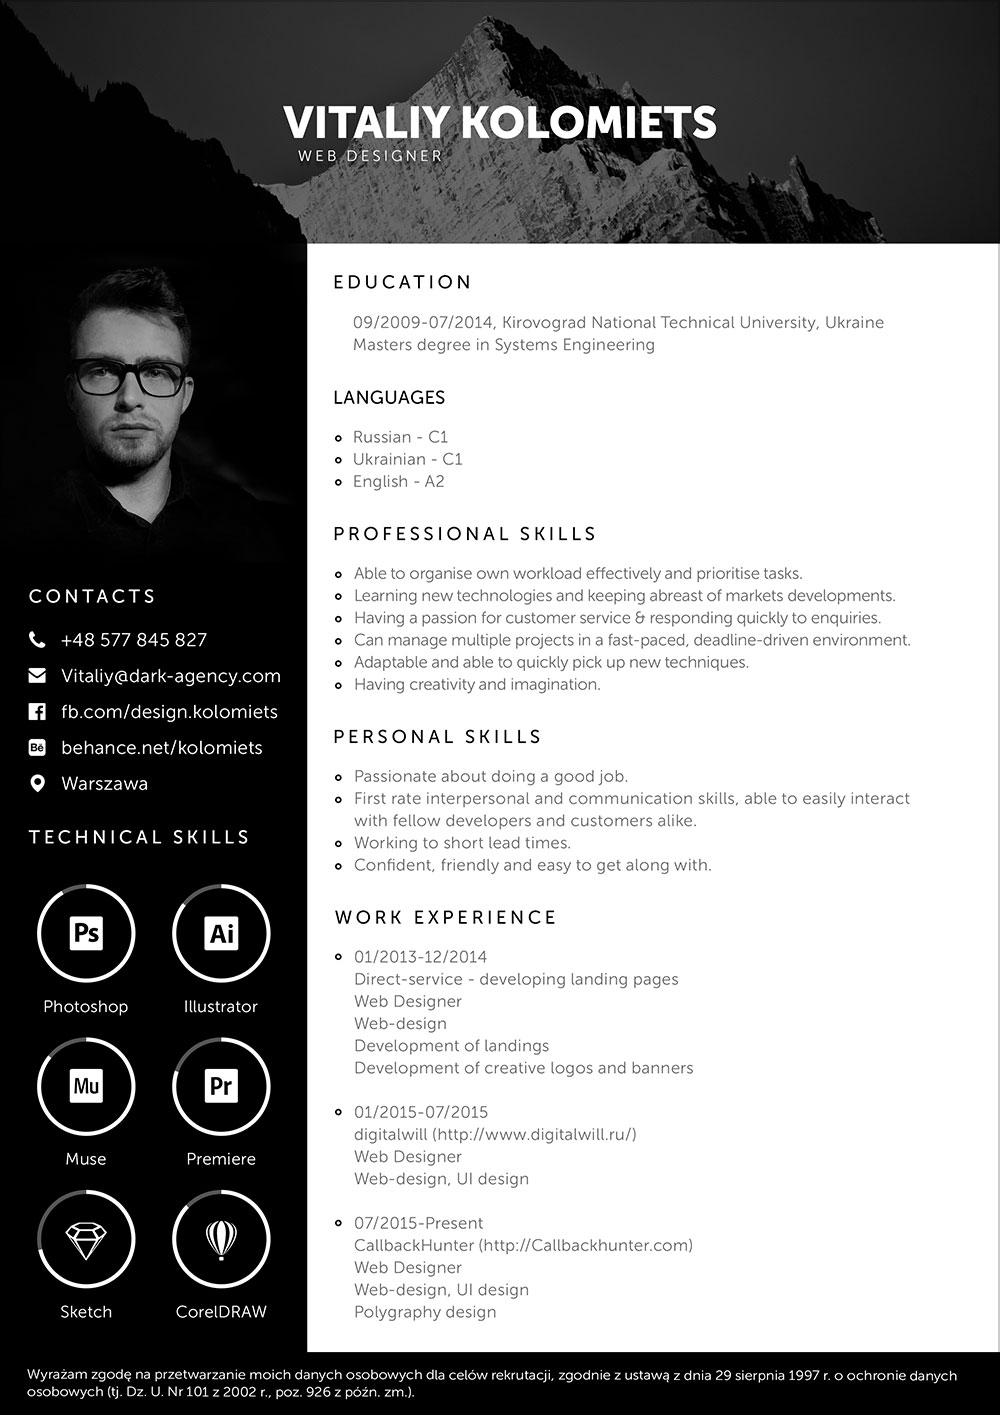 Free-PSD-Resume-Template-for-Web-Developer-2